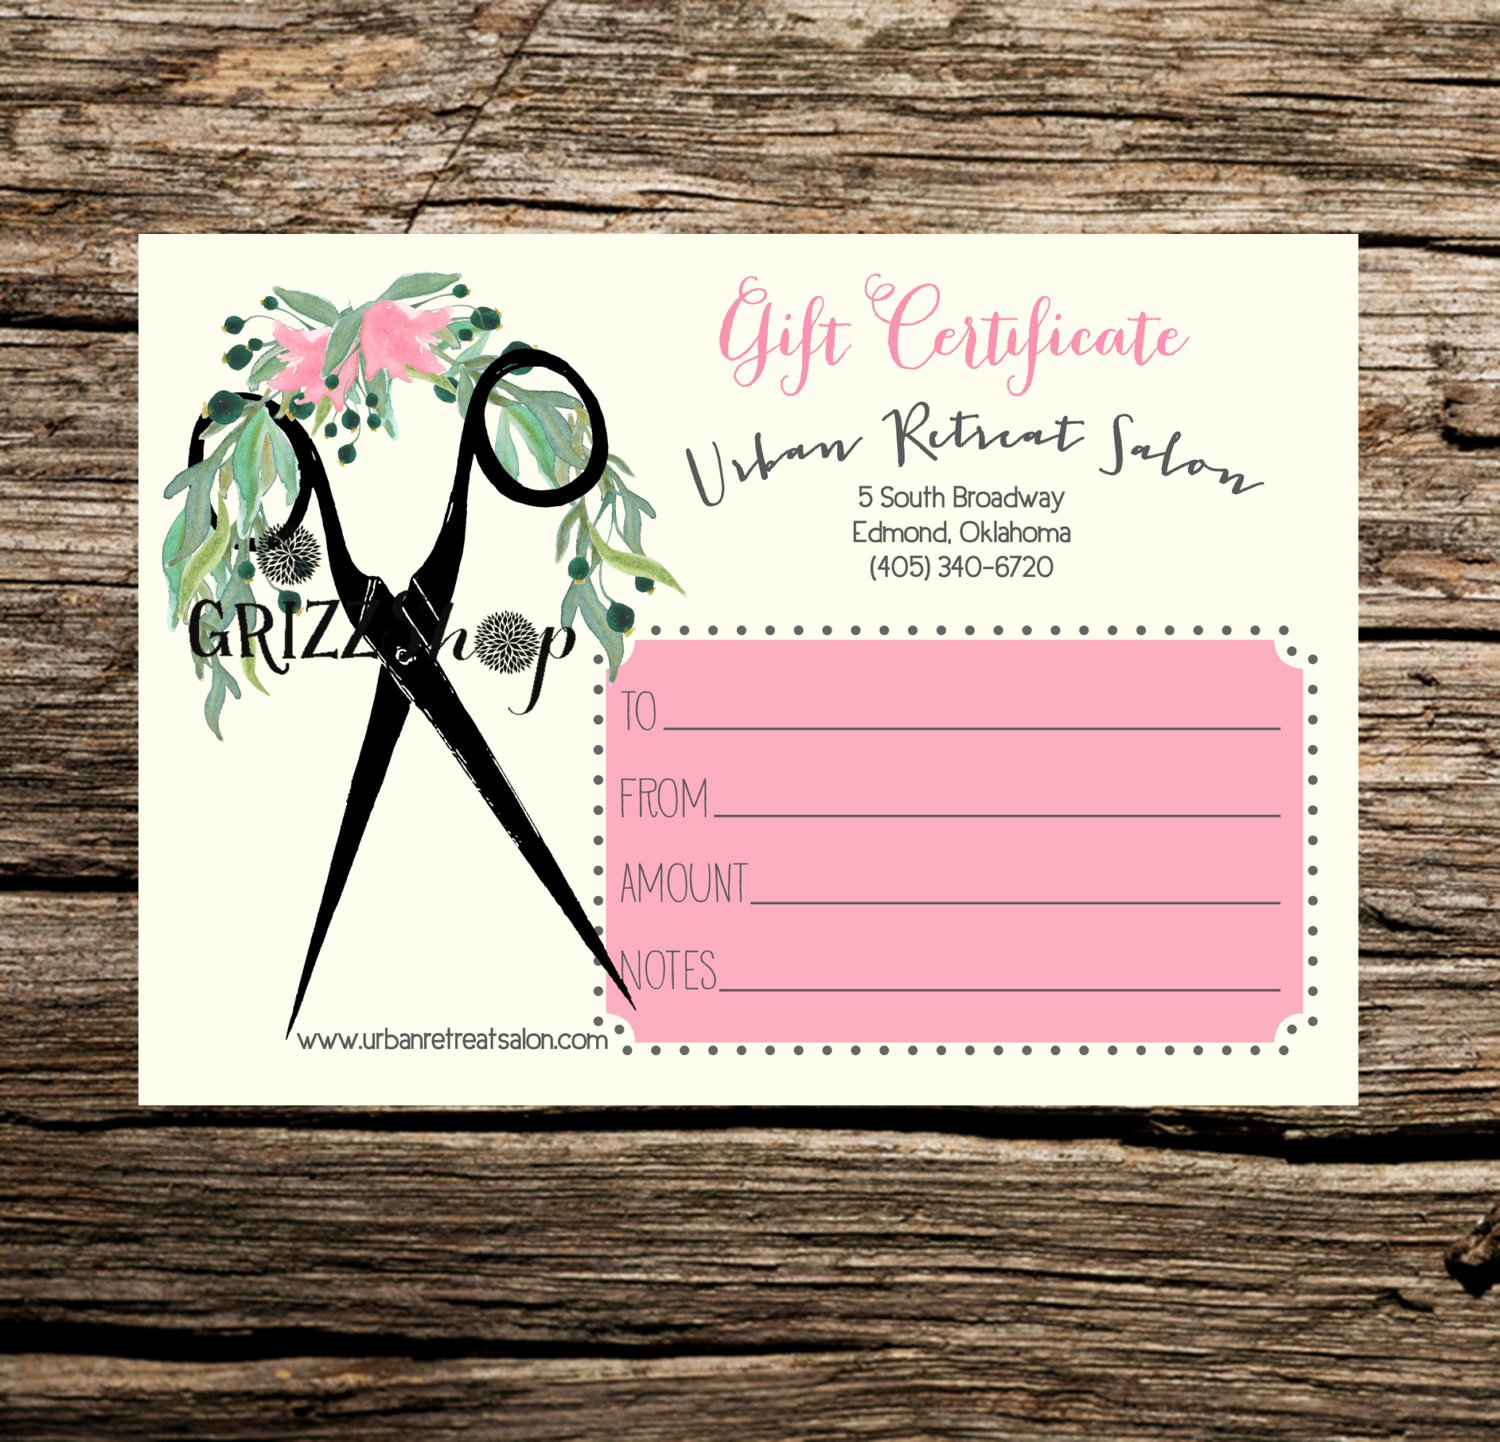 Salon Gift Certificate Template Free Inspirational Set Of 50 Salon Gift Certificates by Grizzshop On Etsy